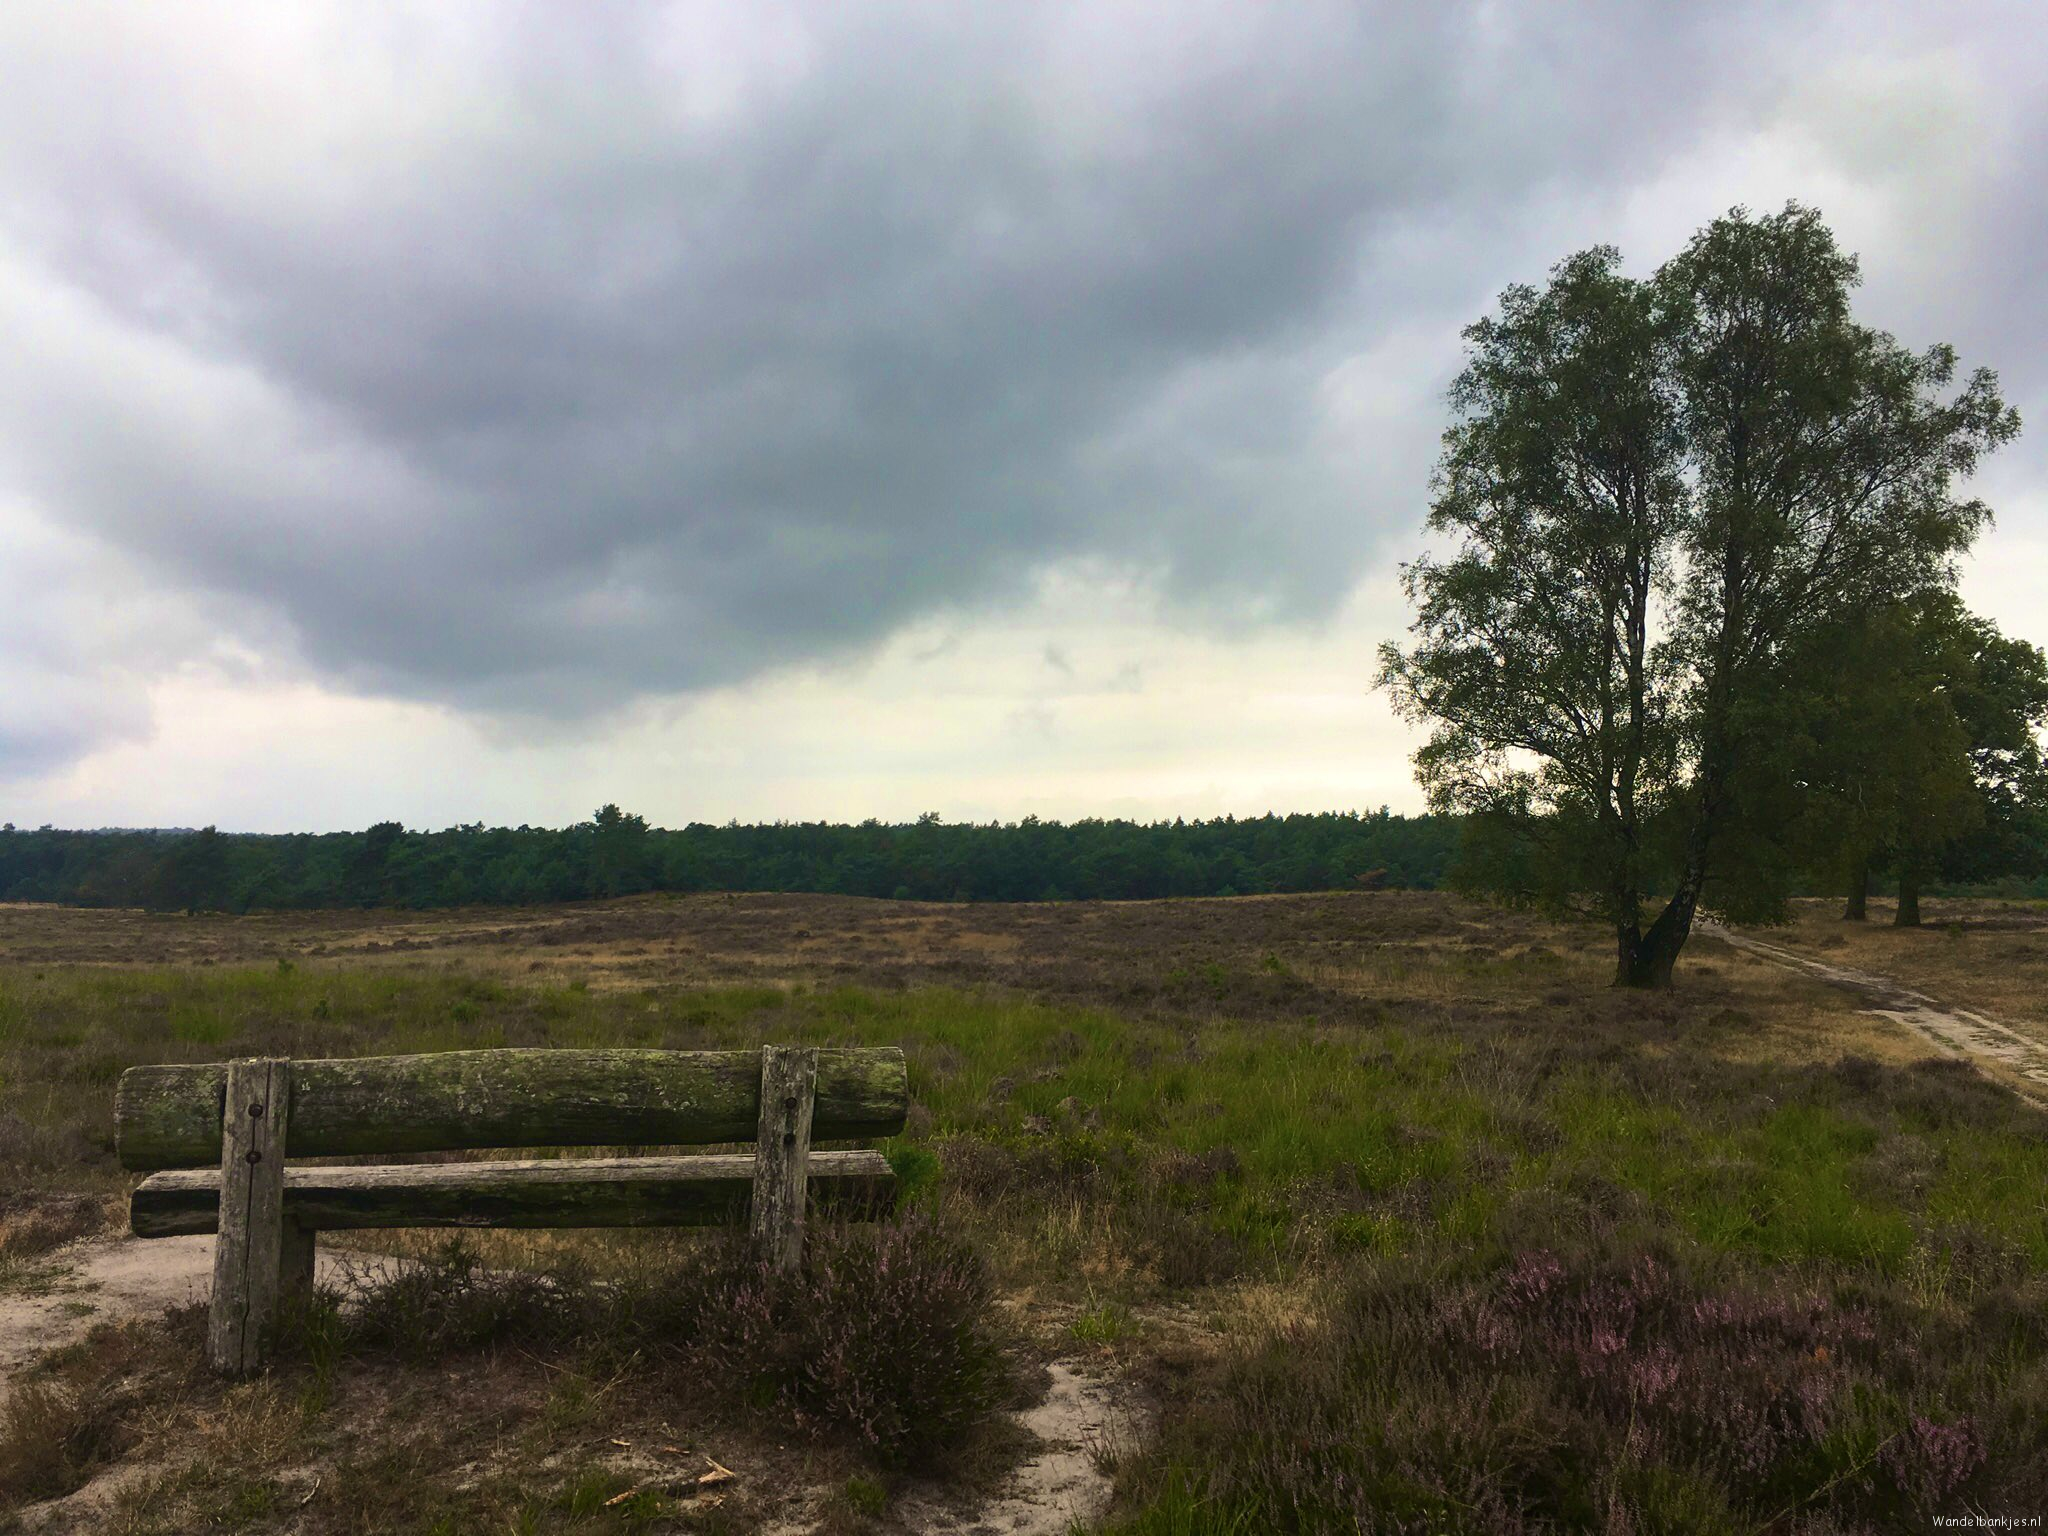 rt-verweij_i-hello-rust-veluwe-parts-walking-% f0% 9f% a5% leg-that-on-black-Saturday-walking benches-https-t-co-rfrwurow0n